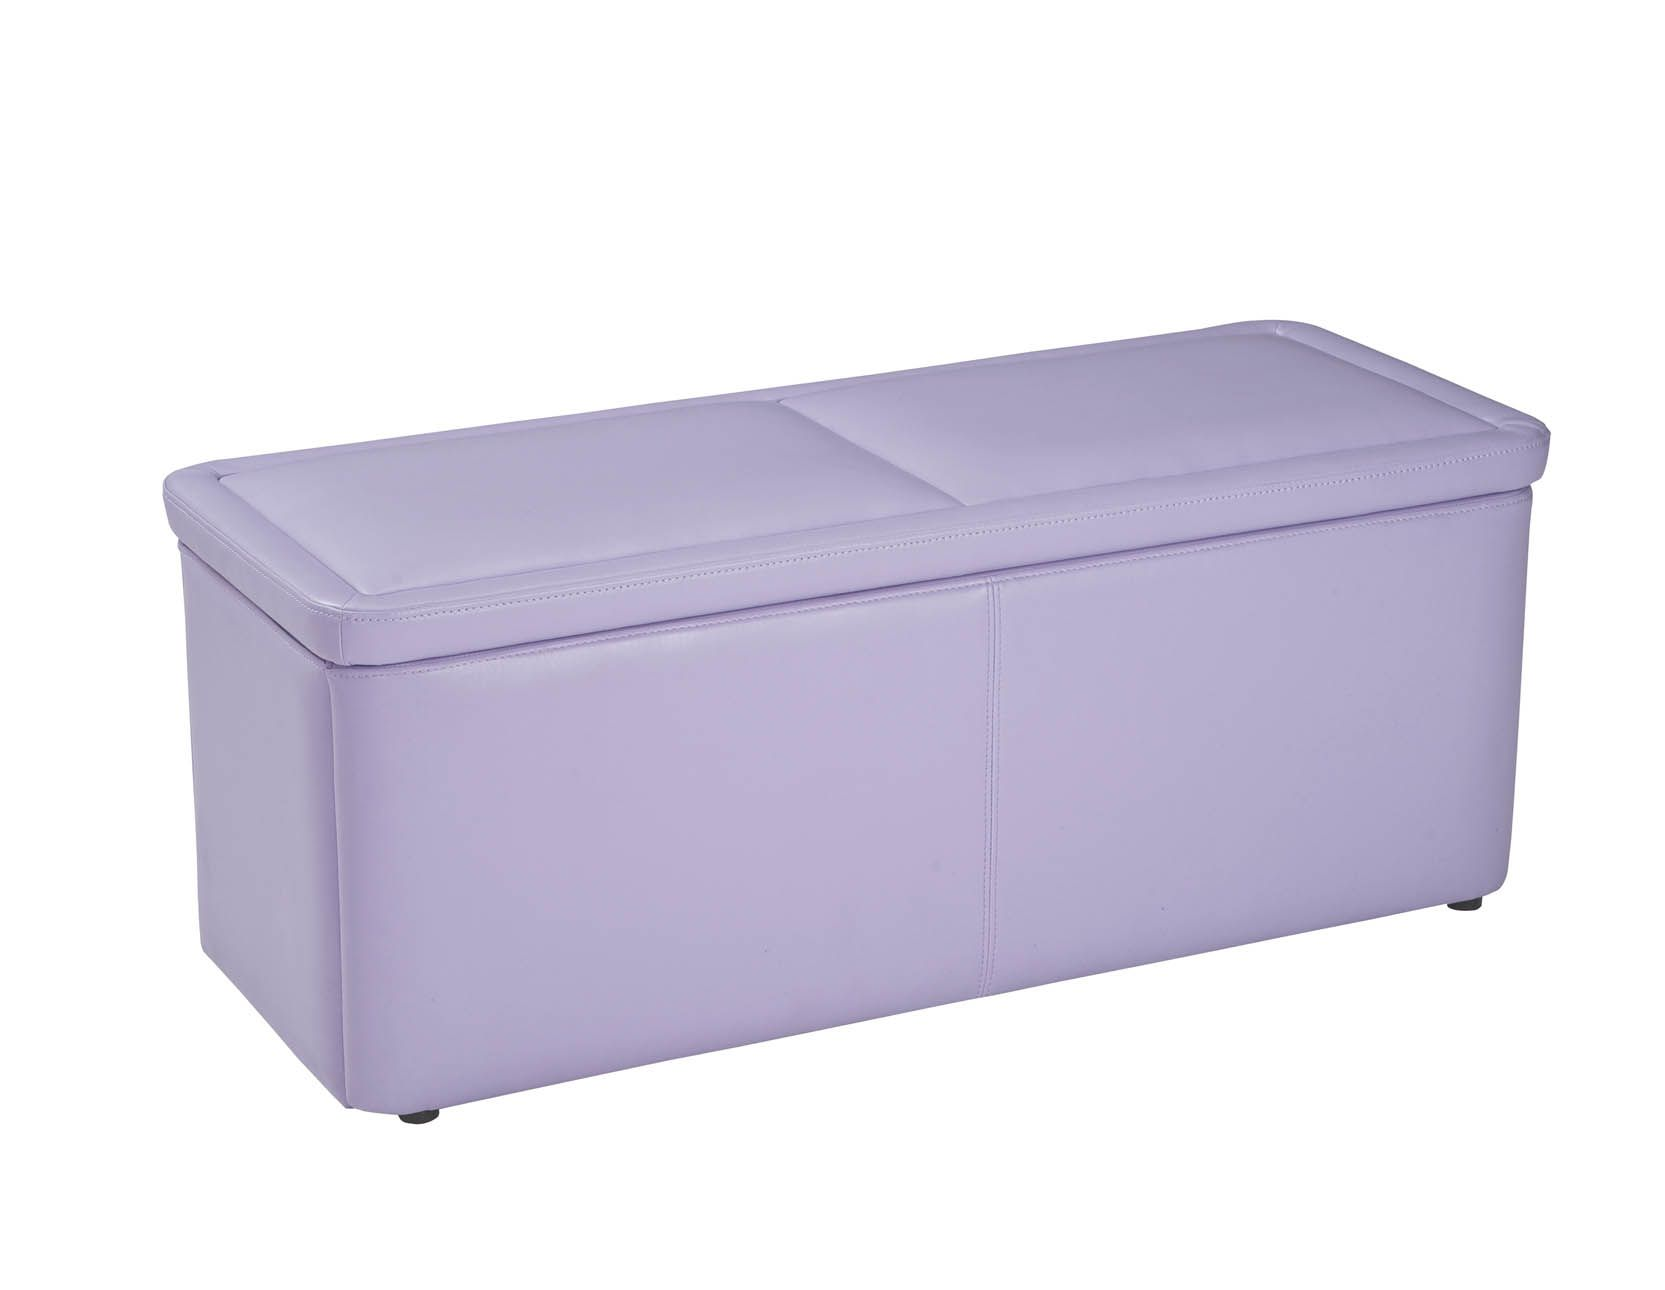 Standard Furniture - Fantasia Lavender Bench/Ottoman for Twin Bed